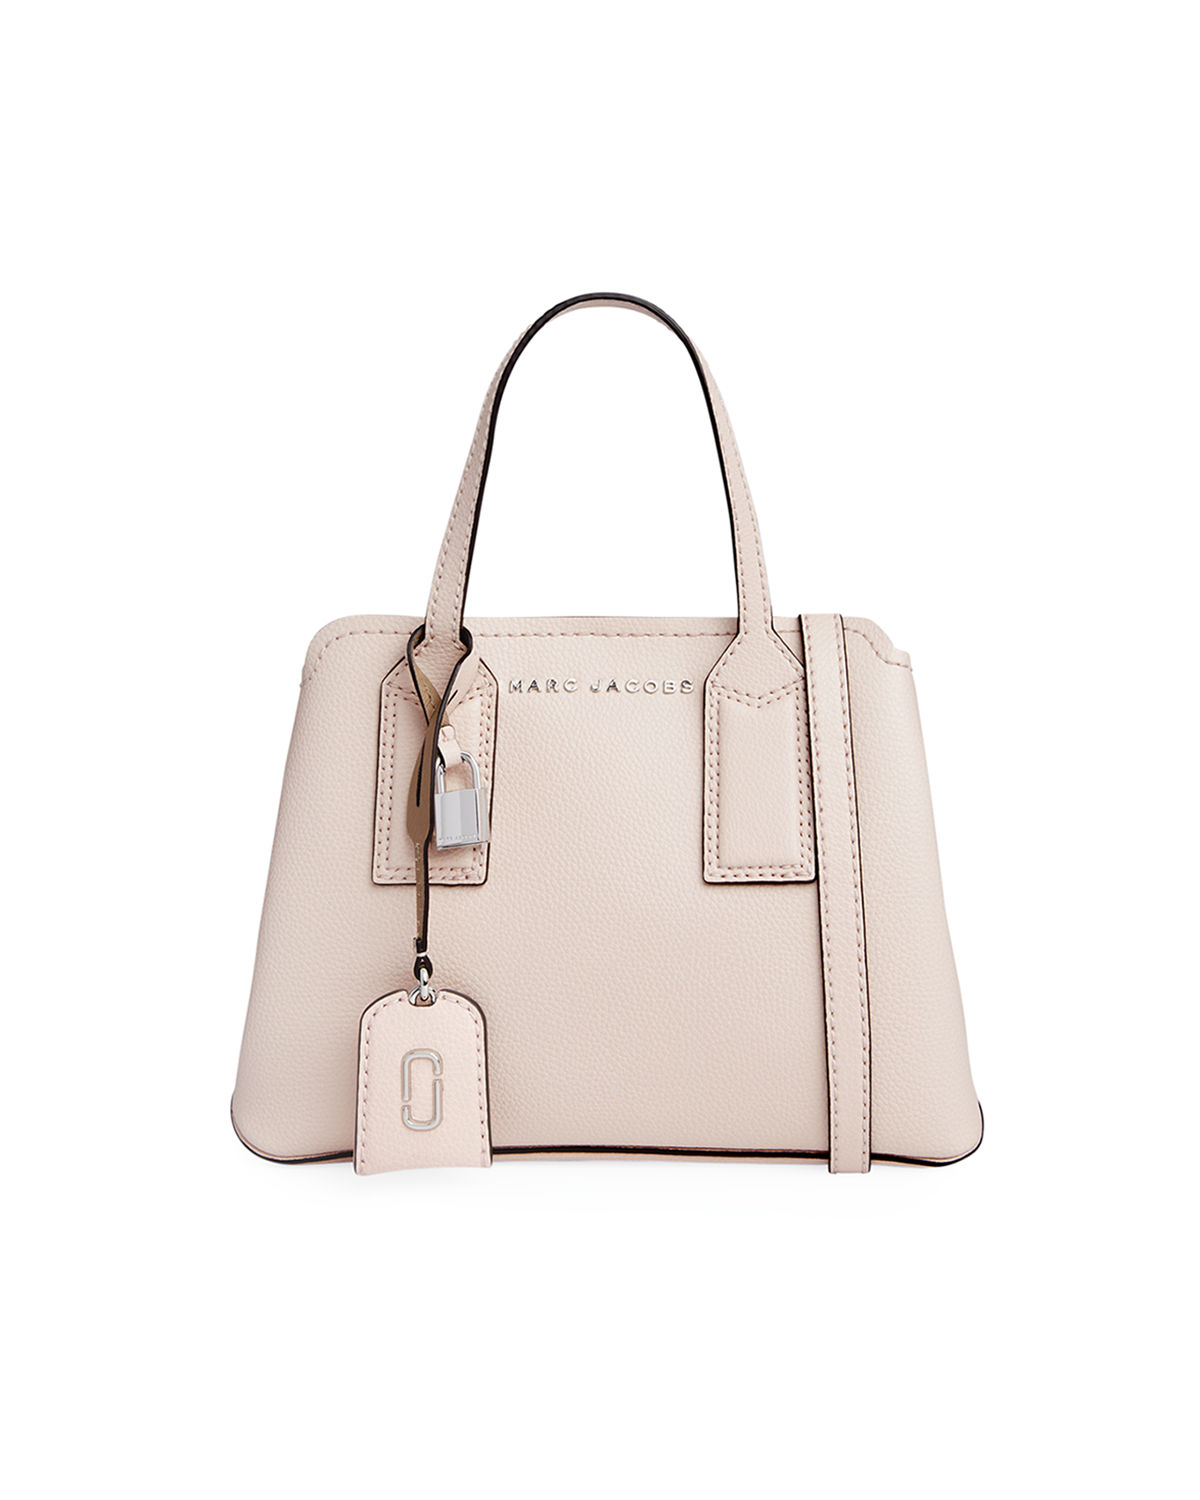 a3bd550200db Marc Jacobs The Editor 29 Pebbled Leather Tote Bag